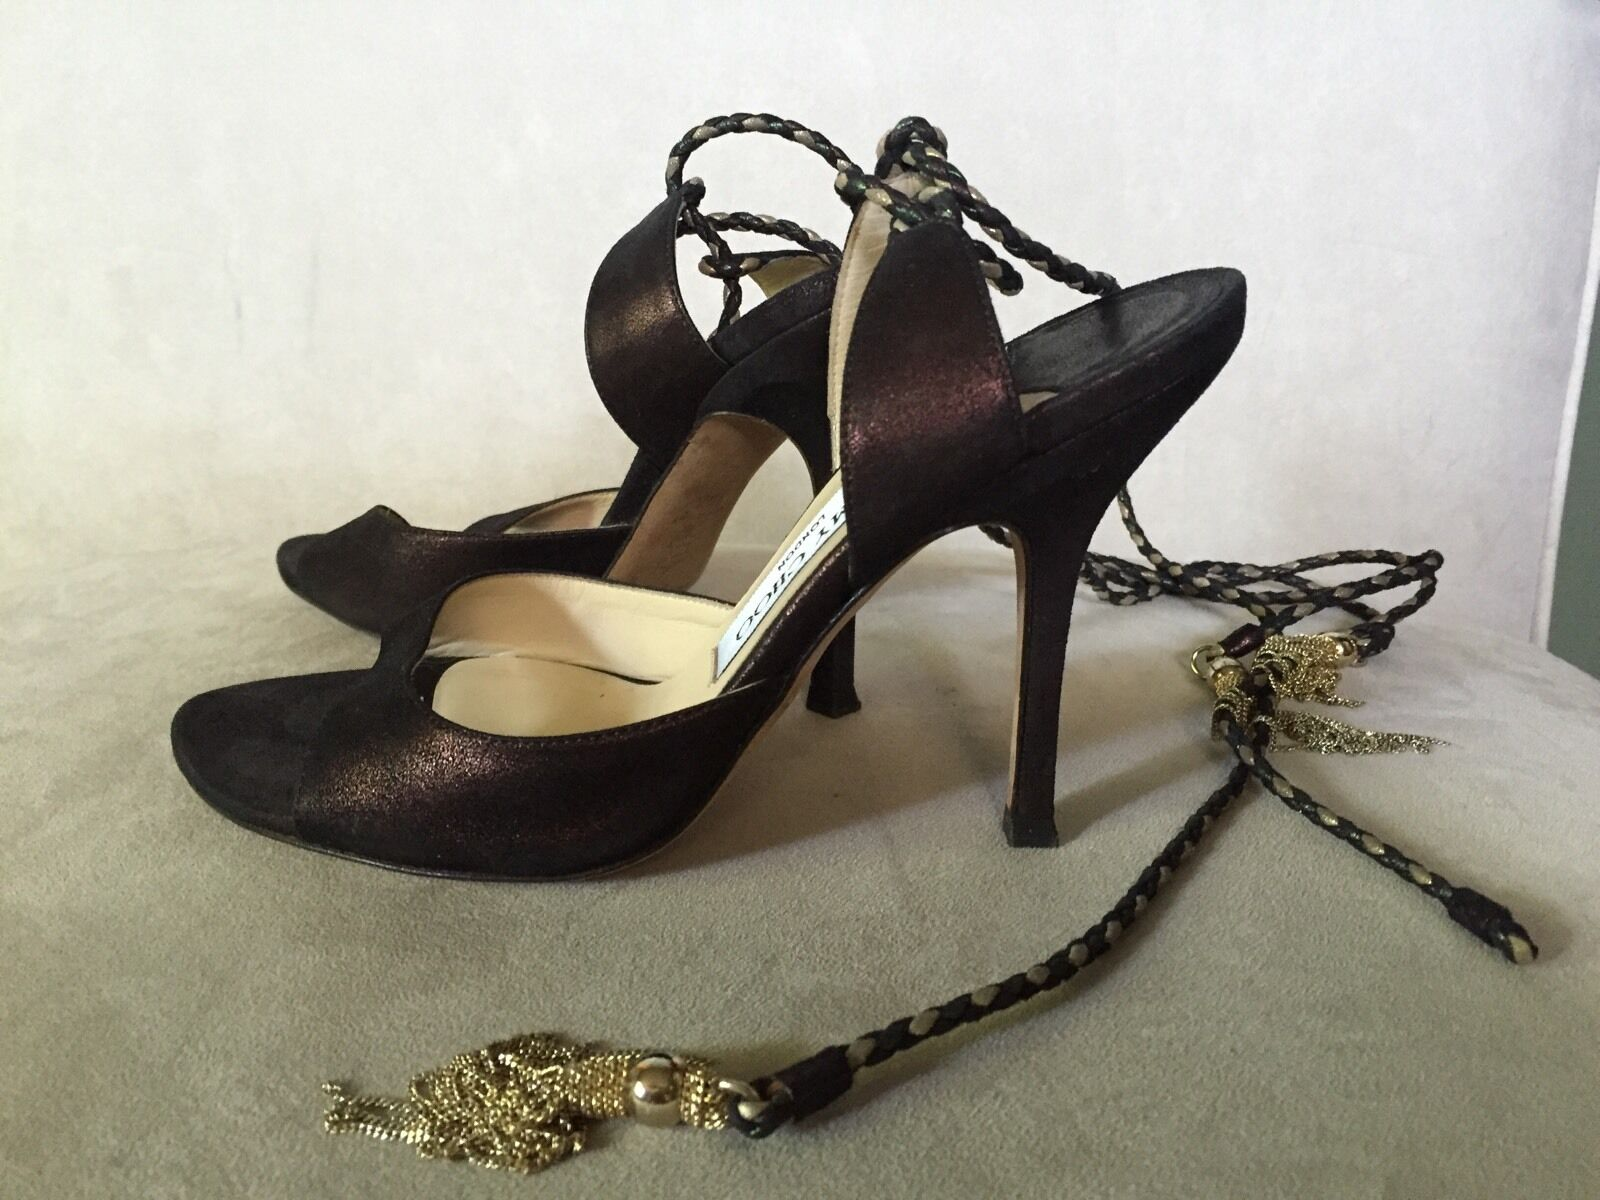 seleziona tra le nuove marche come Jimmy Choo Bronze Suede Lace Up Up Up Sandals Heels Chain 36.5  contatore genuino